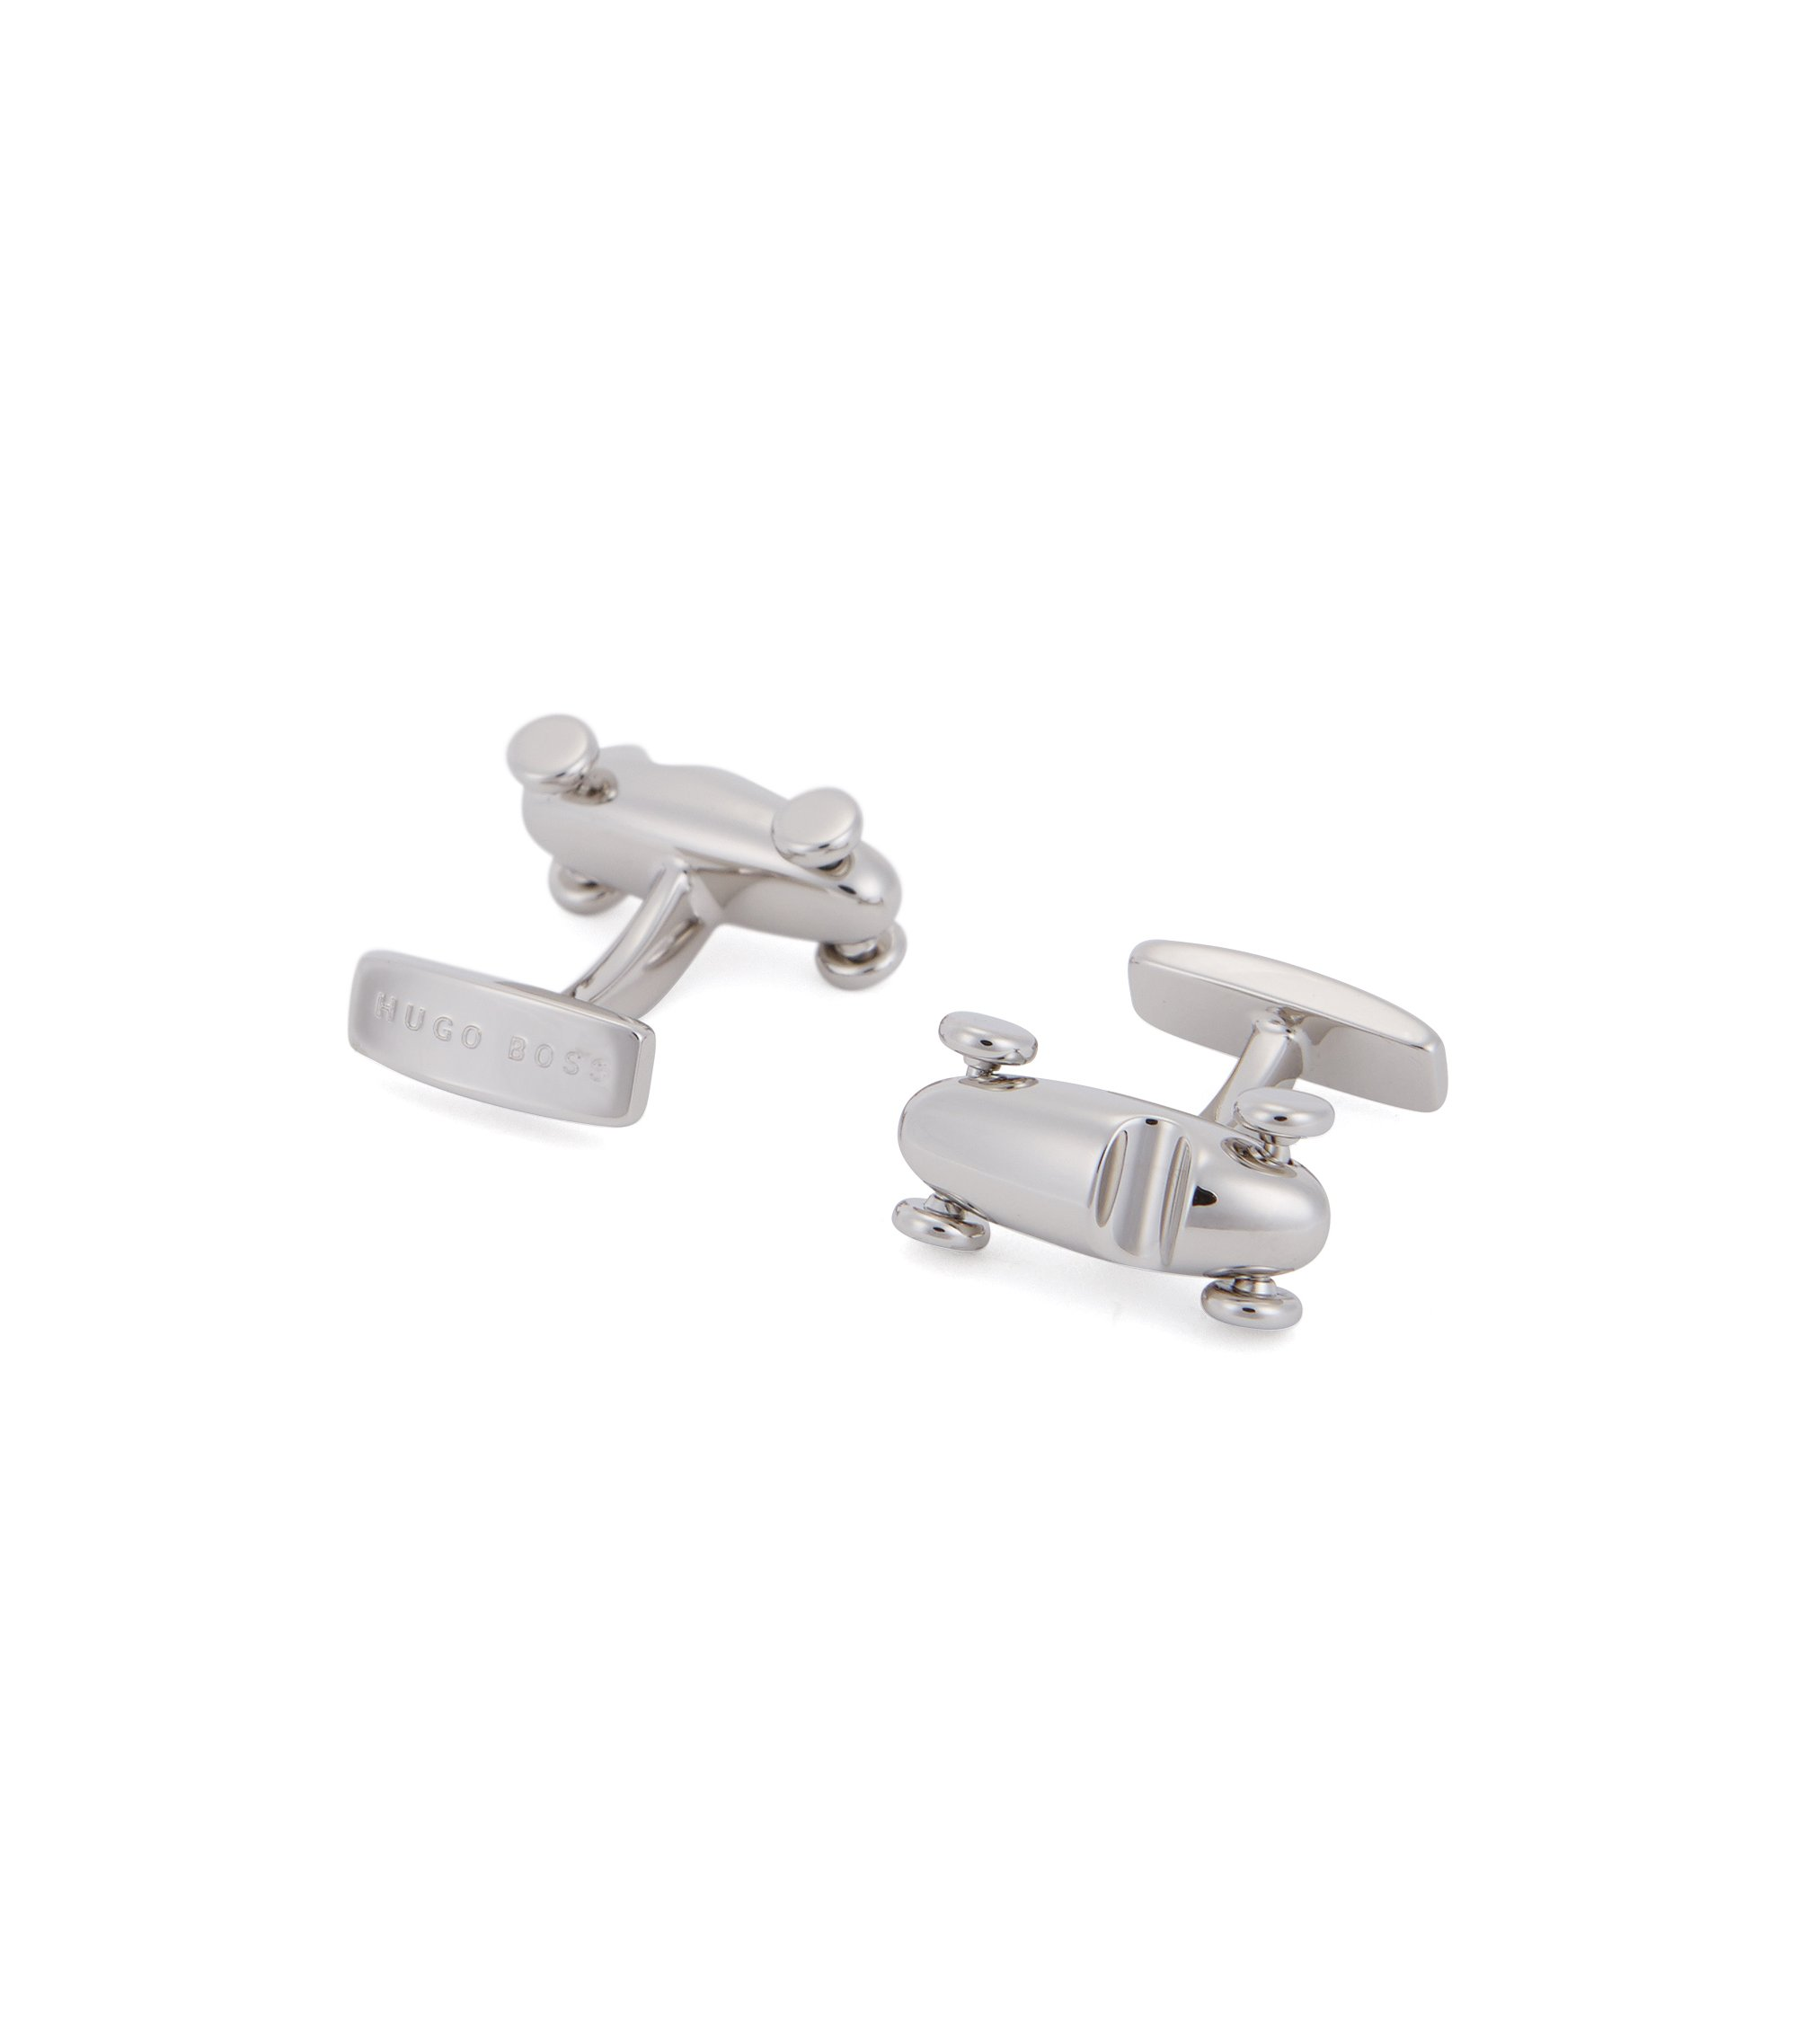 Race car cufflinks in hand-polished brass, Silver